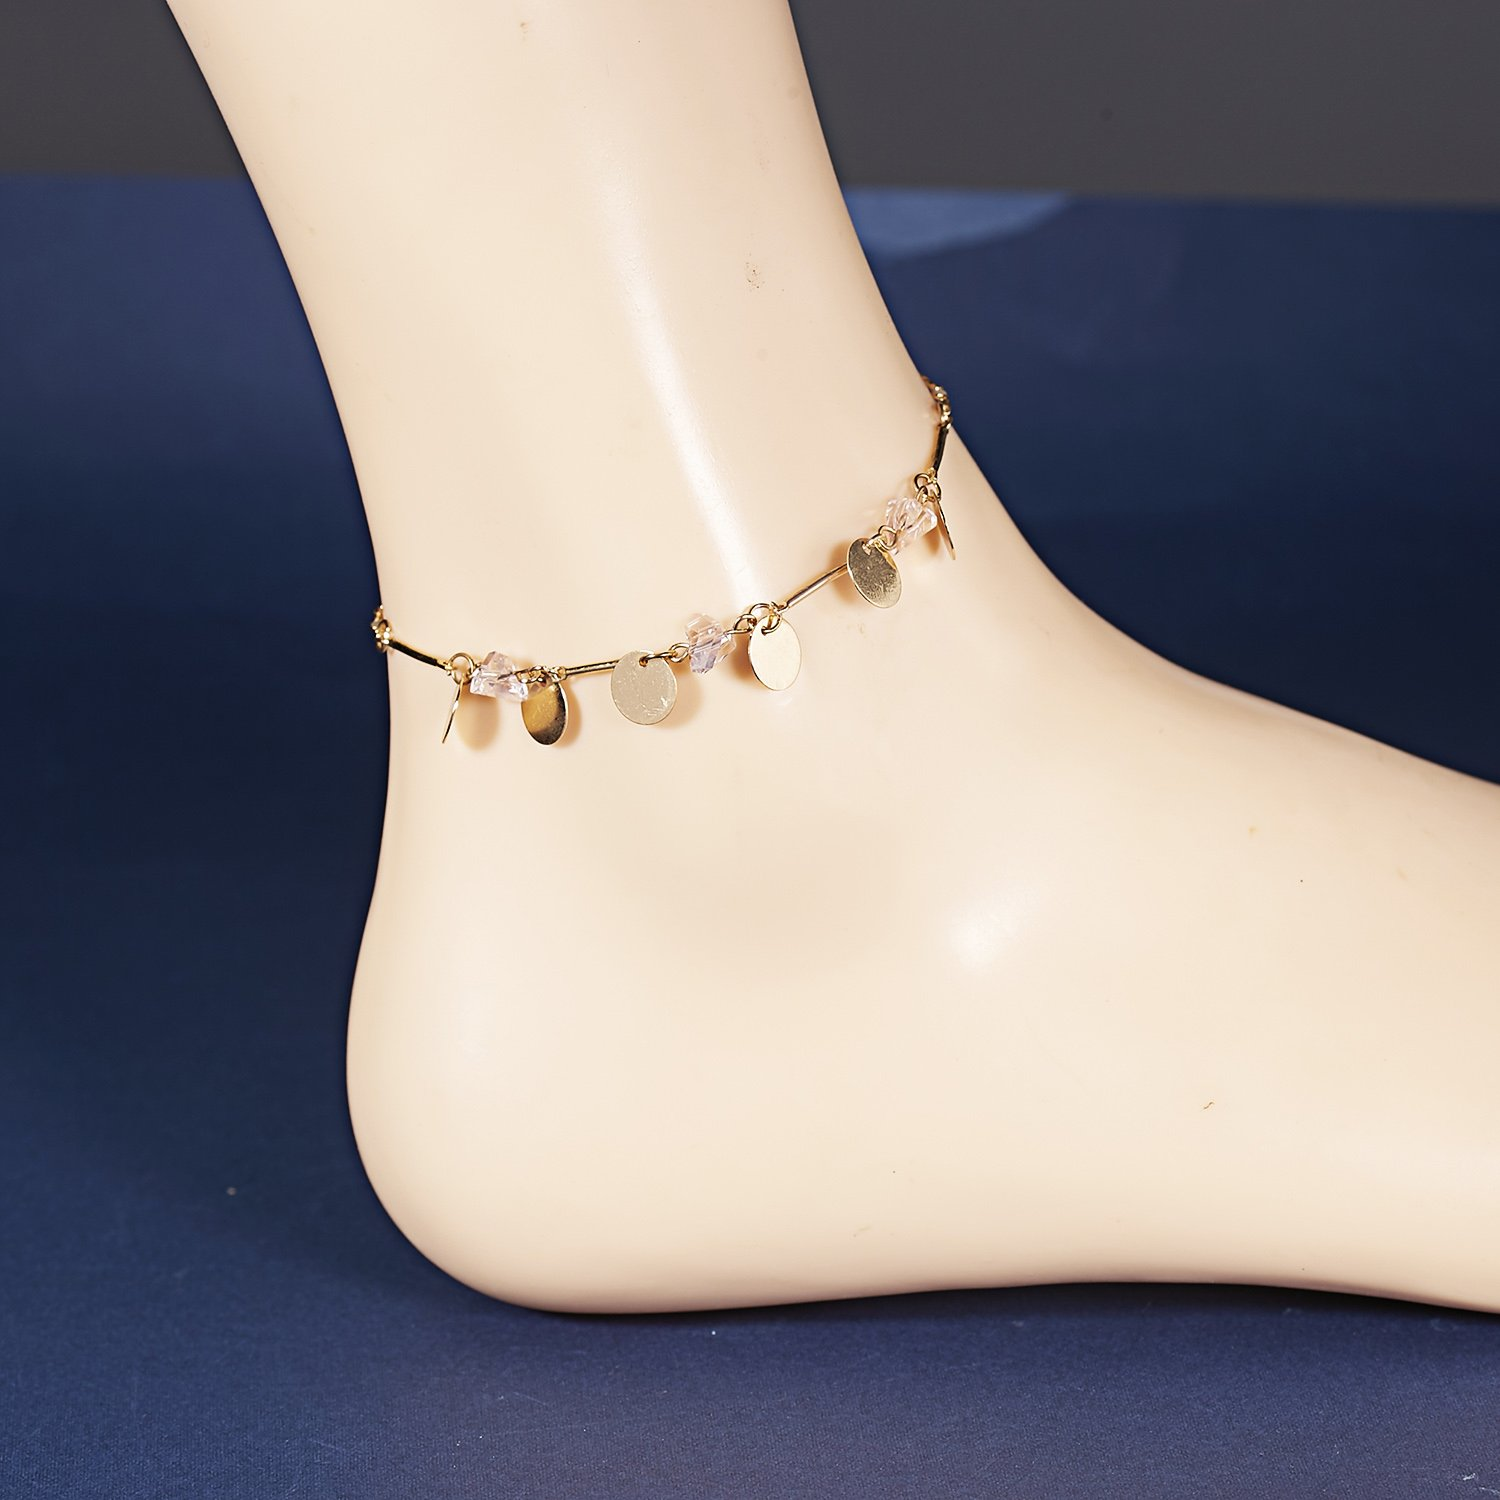 FANSING Handmade Gold Anklet Bracelet Pink Crystal Surfer Beach Foot Jewelry with Extender